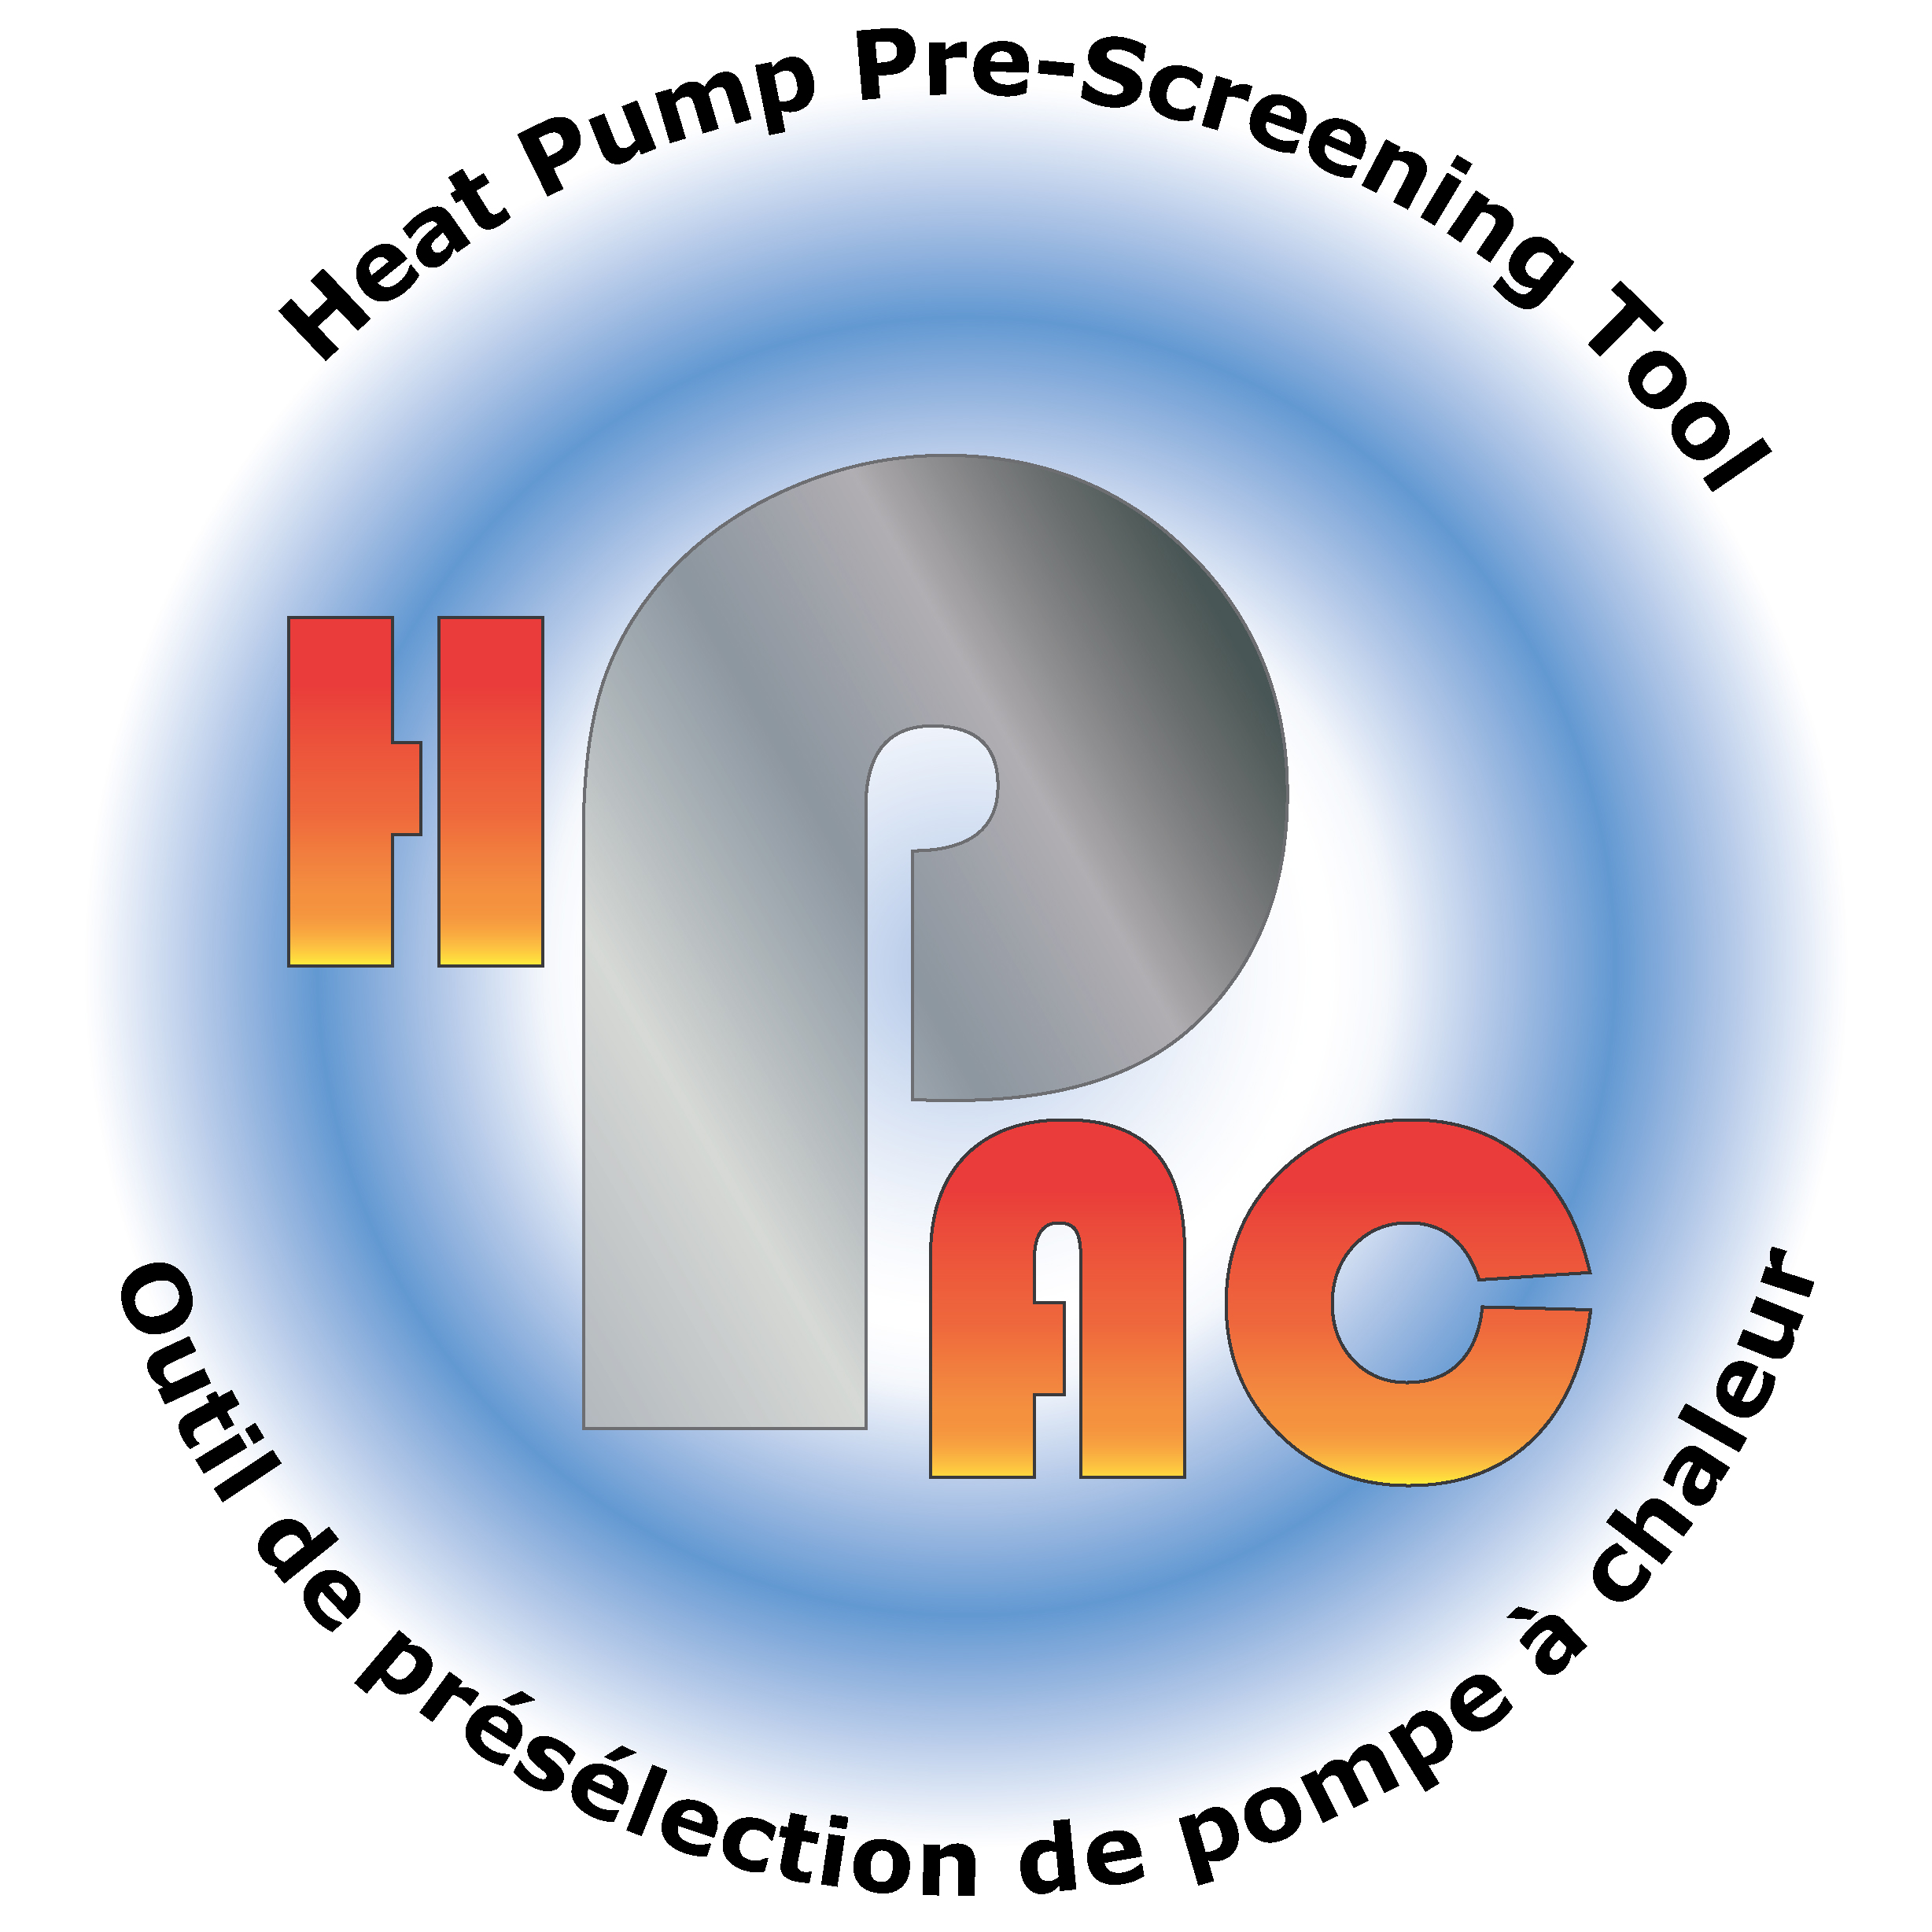 Heat Pump Pre-Screening Tool